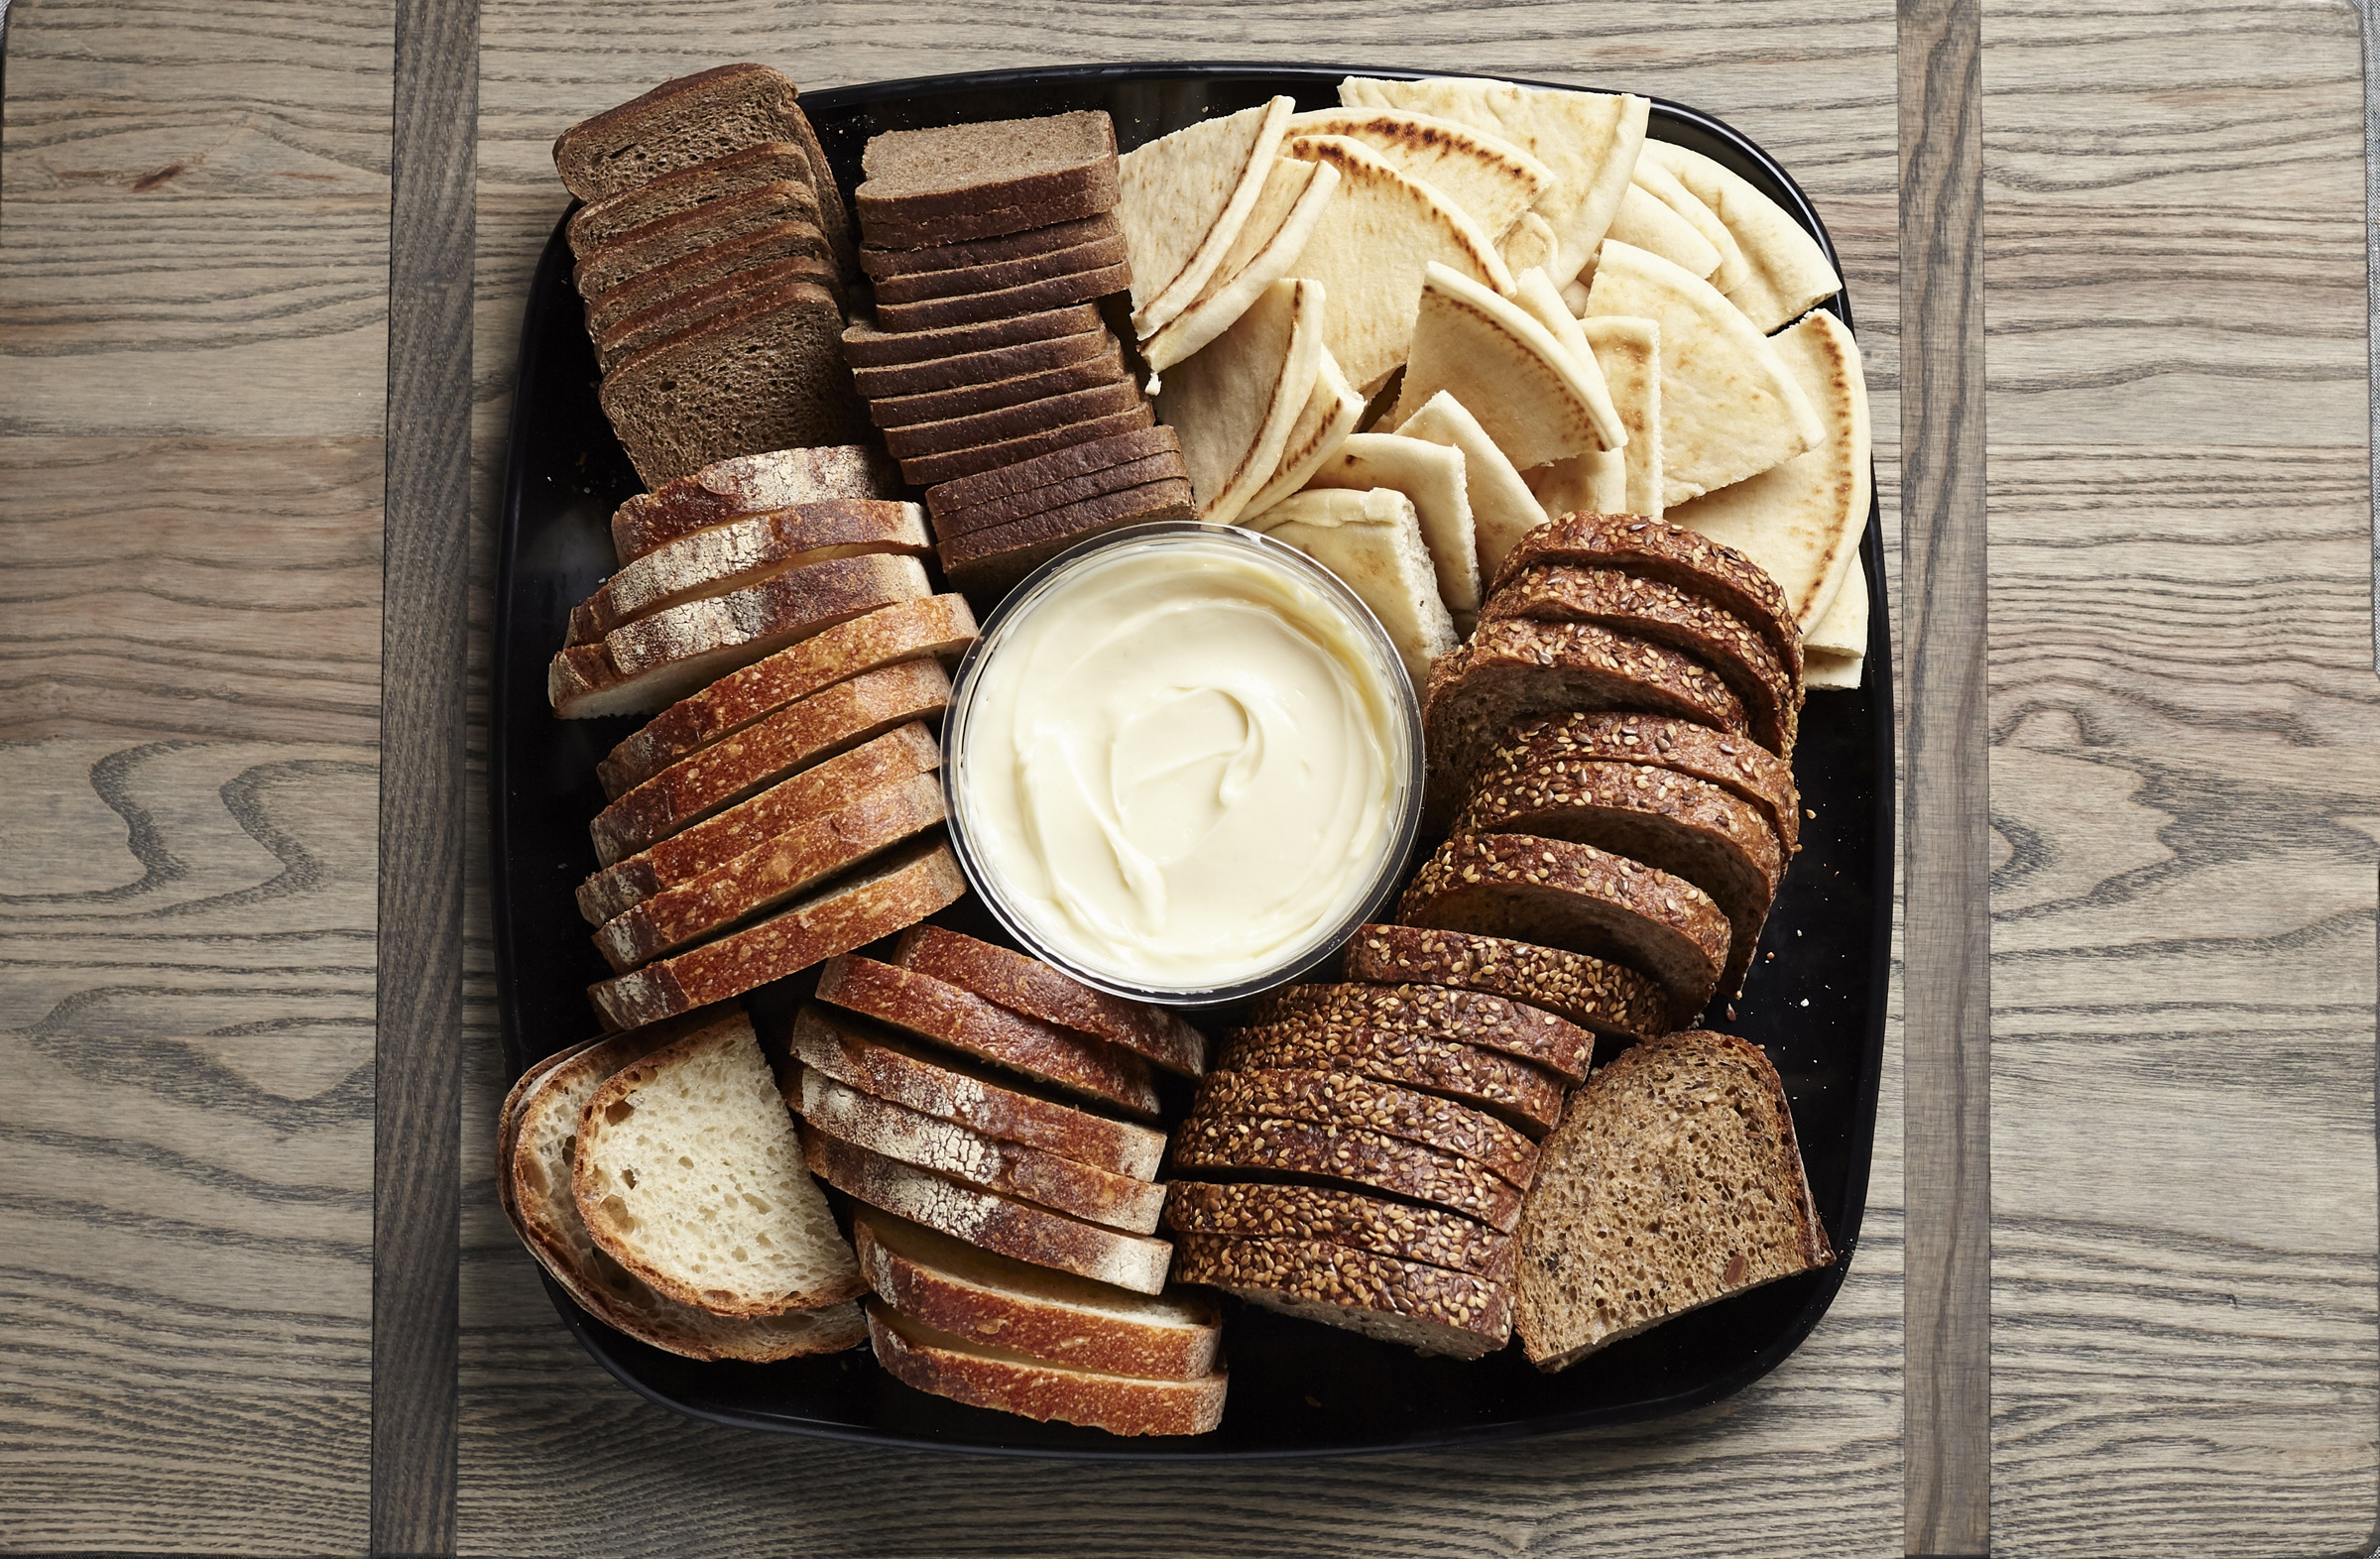 sandwich bread catering tray from Zupans